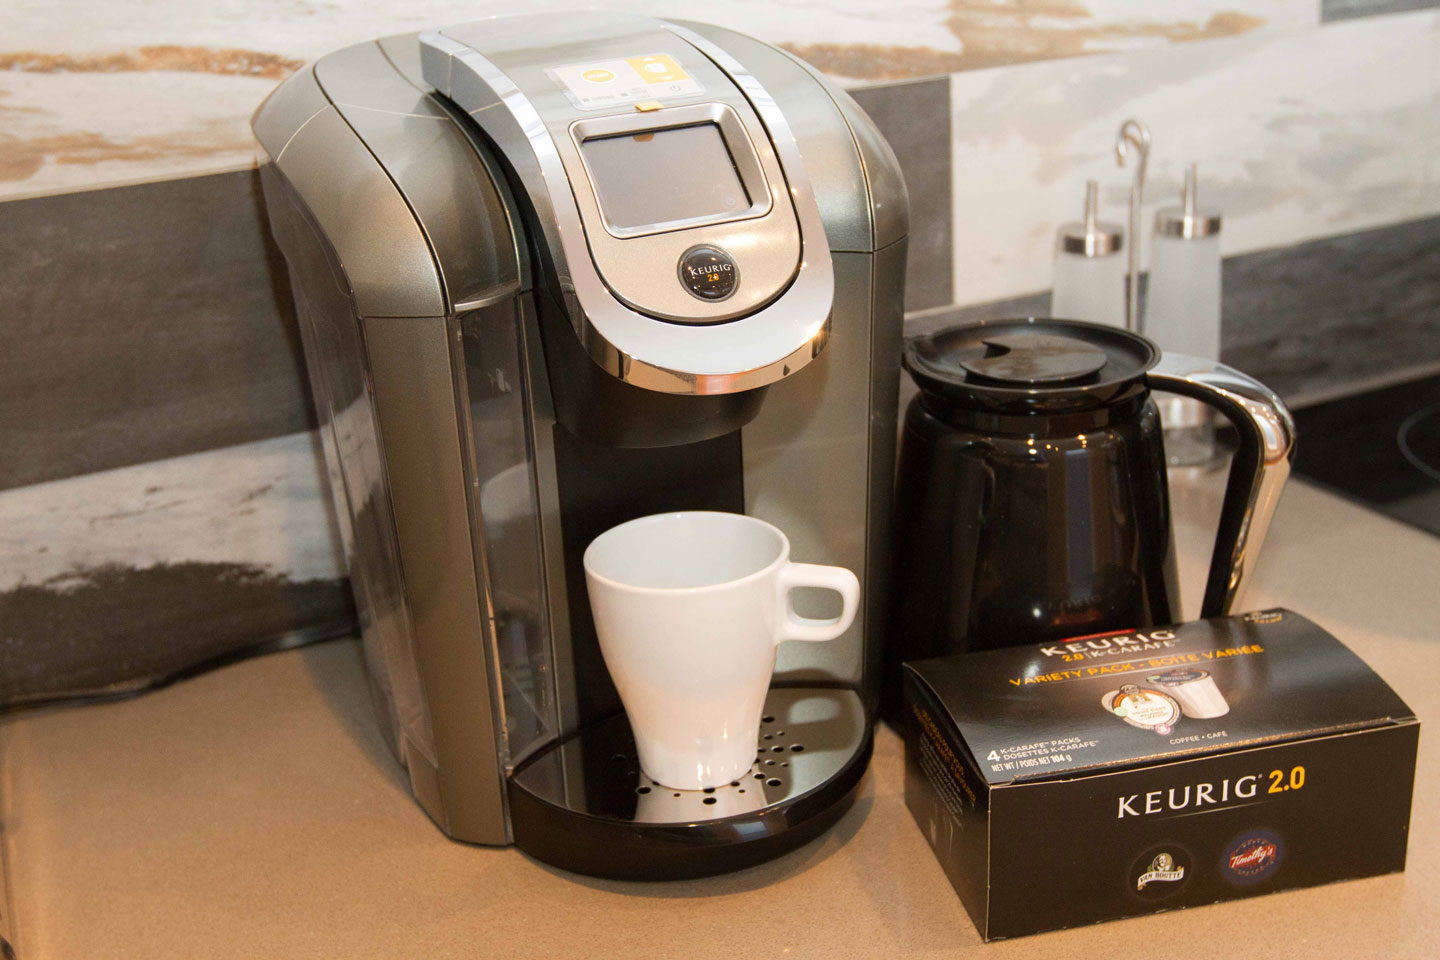 Fabfour: Keurig coffee machine with pods provided